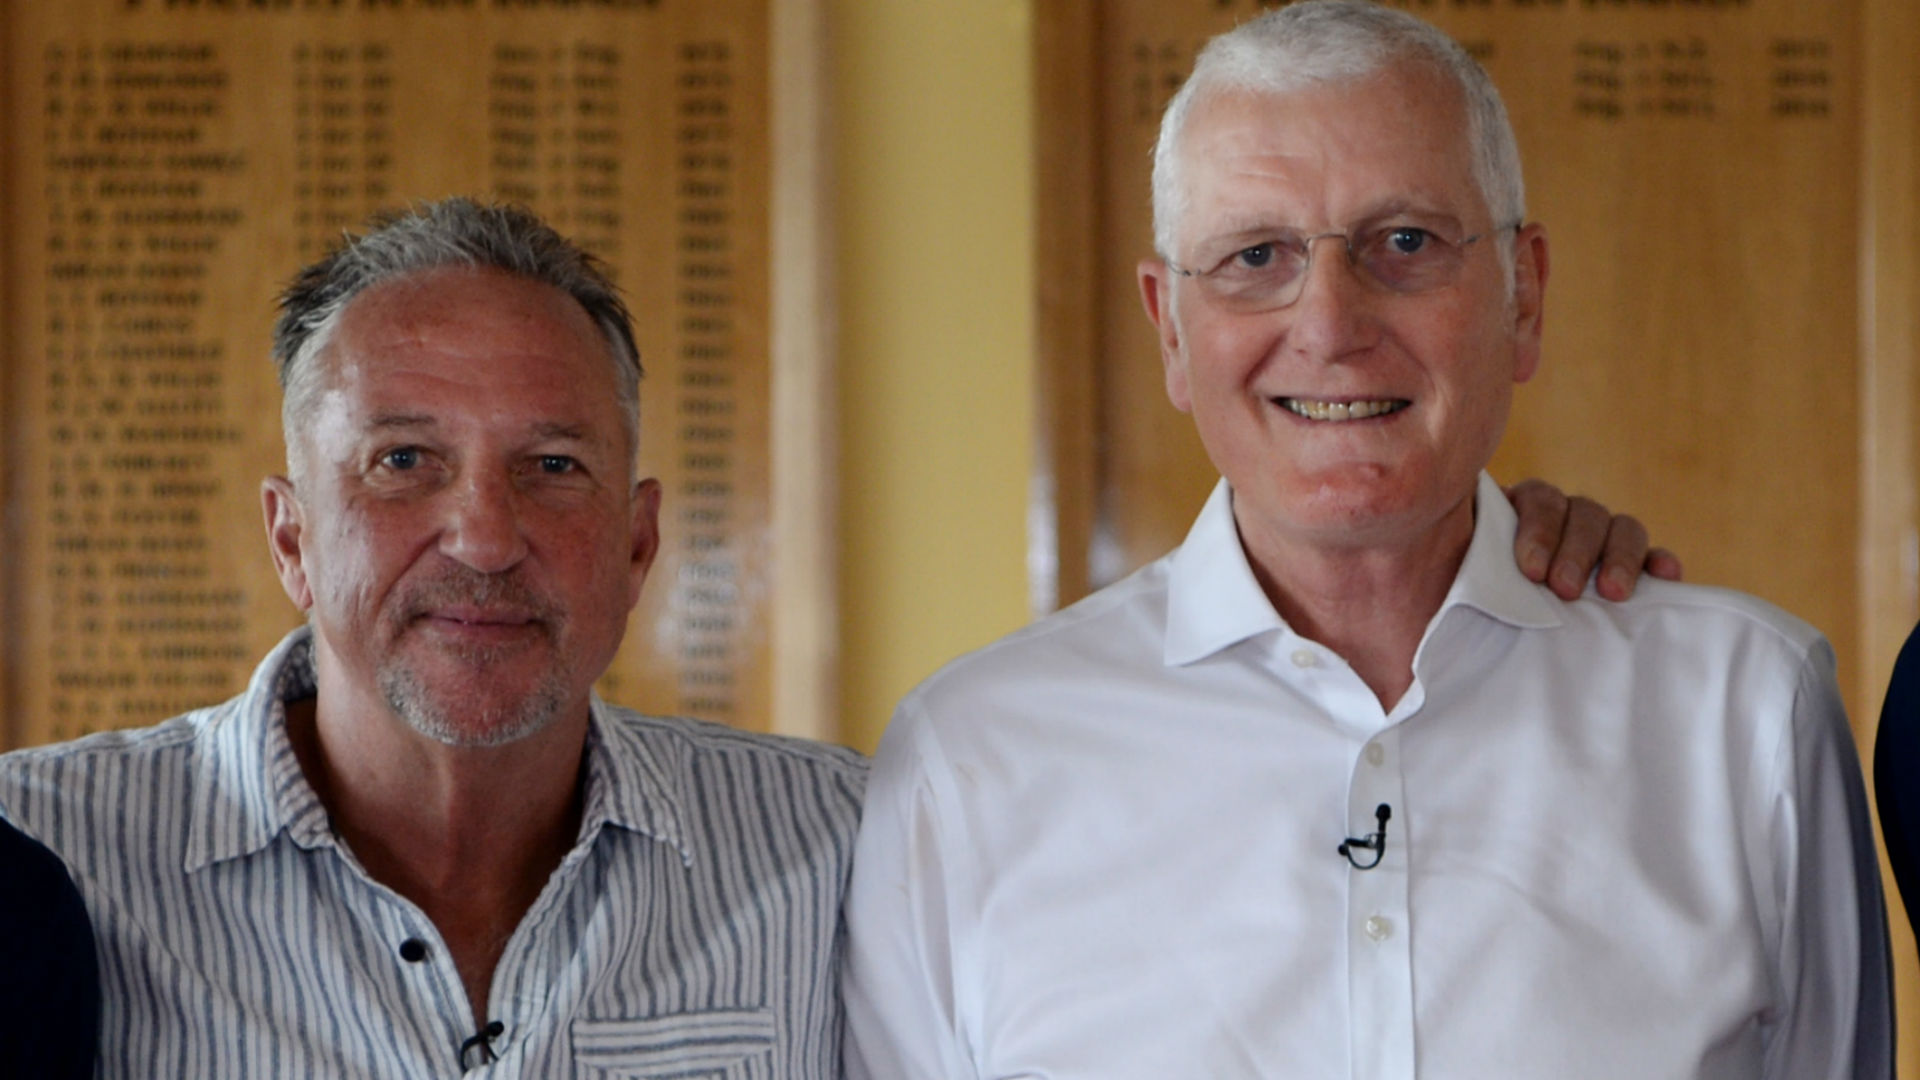 He was like a big brother - Ian Botham's heartfelt tribute to Bob Willis